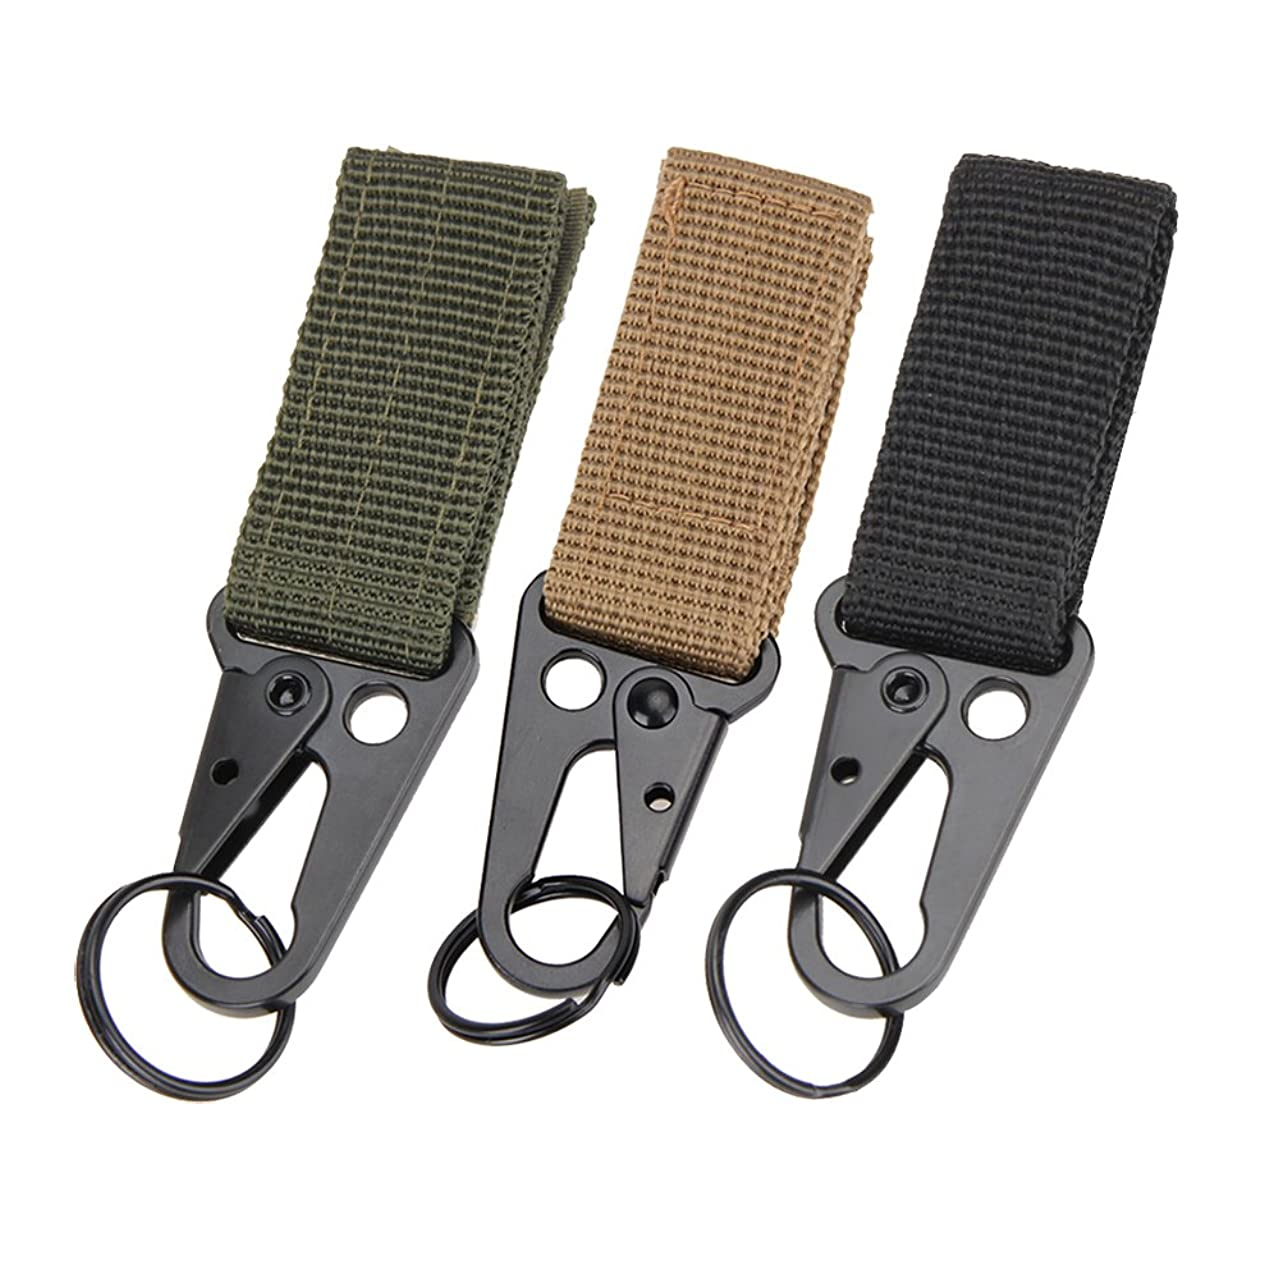 Tactical Gear Clip Web Nylon Belt Band Keeper Pouch Carabiner Standard Key Ring Holder Chain Quick Release Compatible for Outdoor Activities Hook with Molle Bags